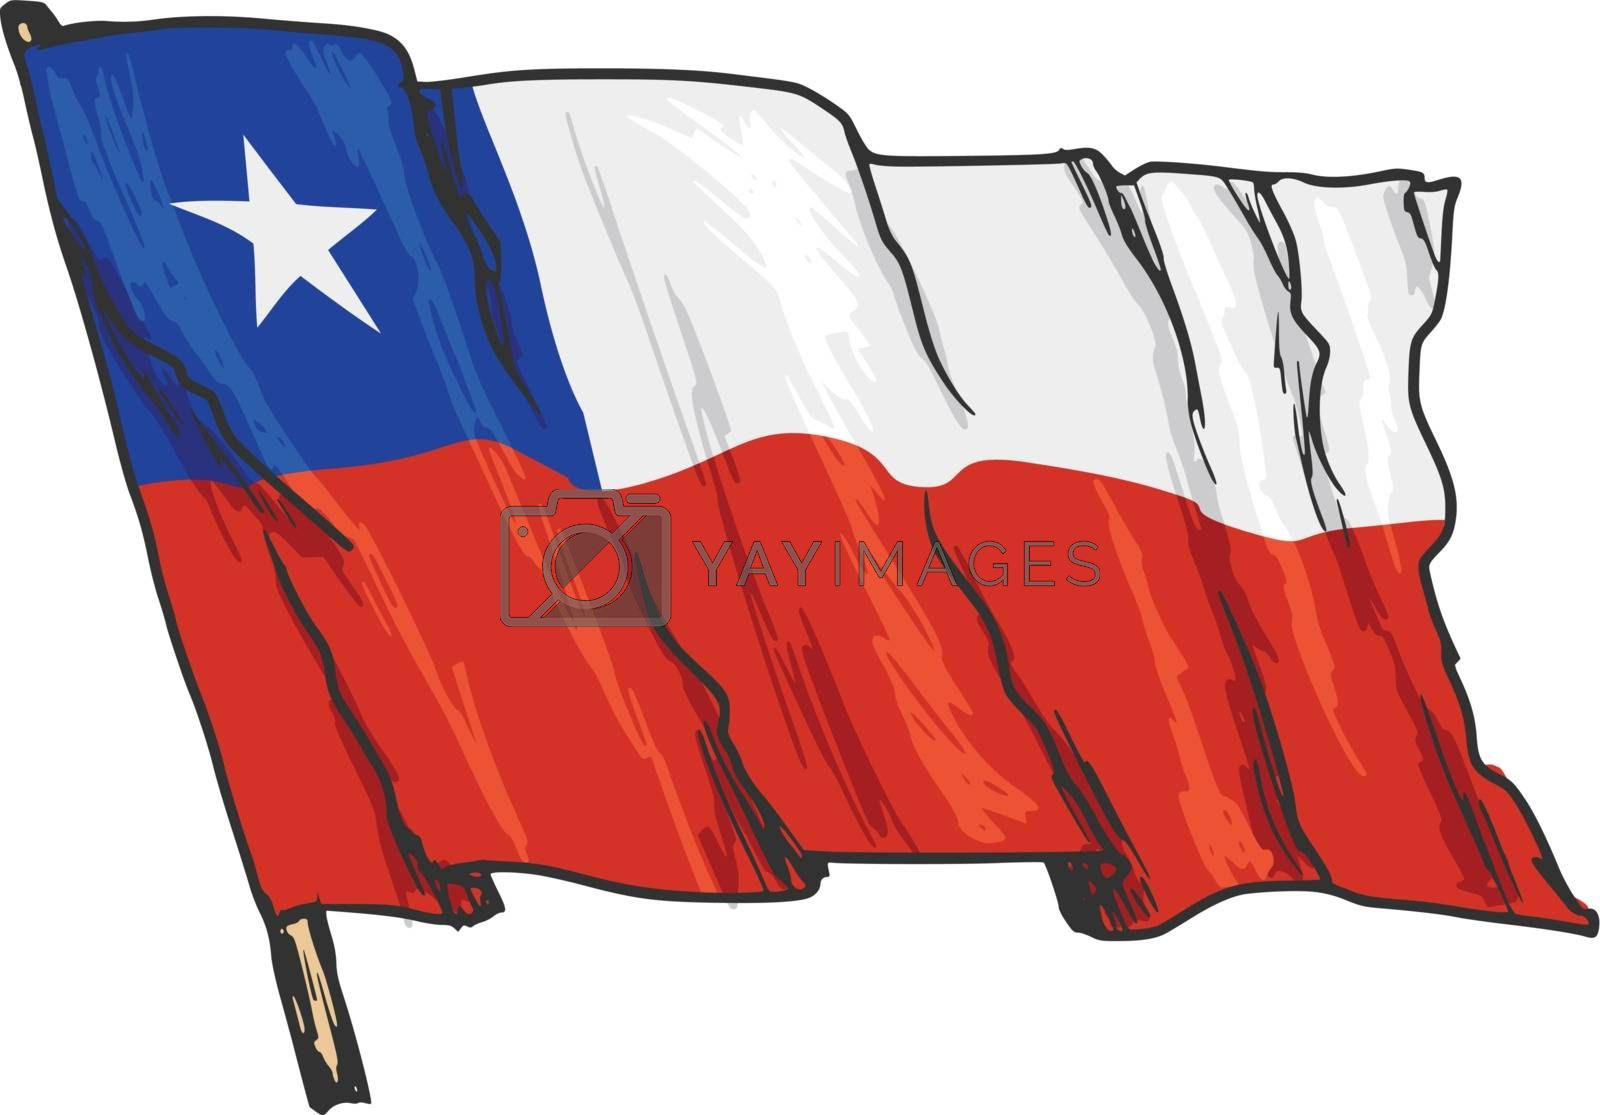 hand drawn, sketch, illustration of flag of Chile